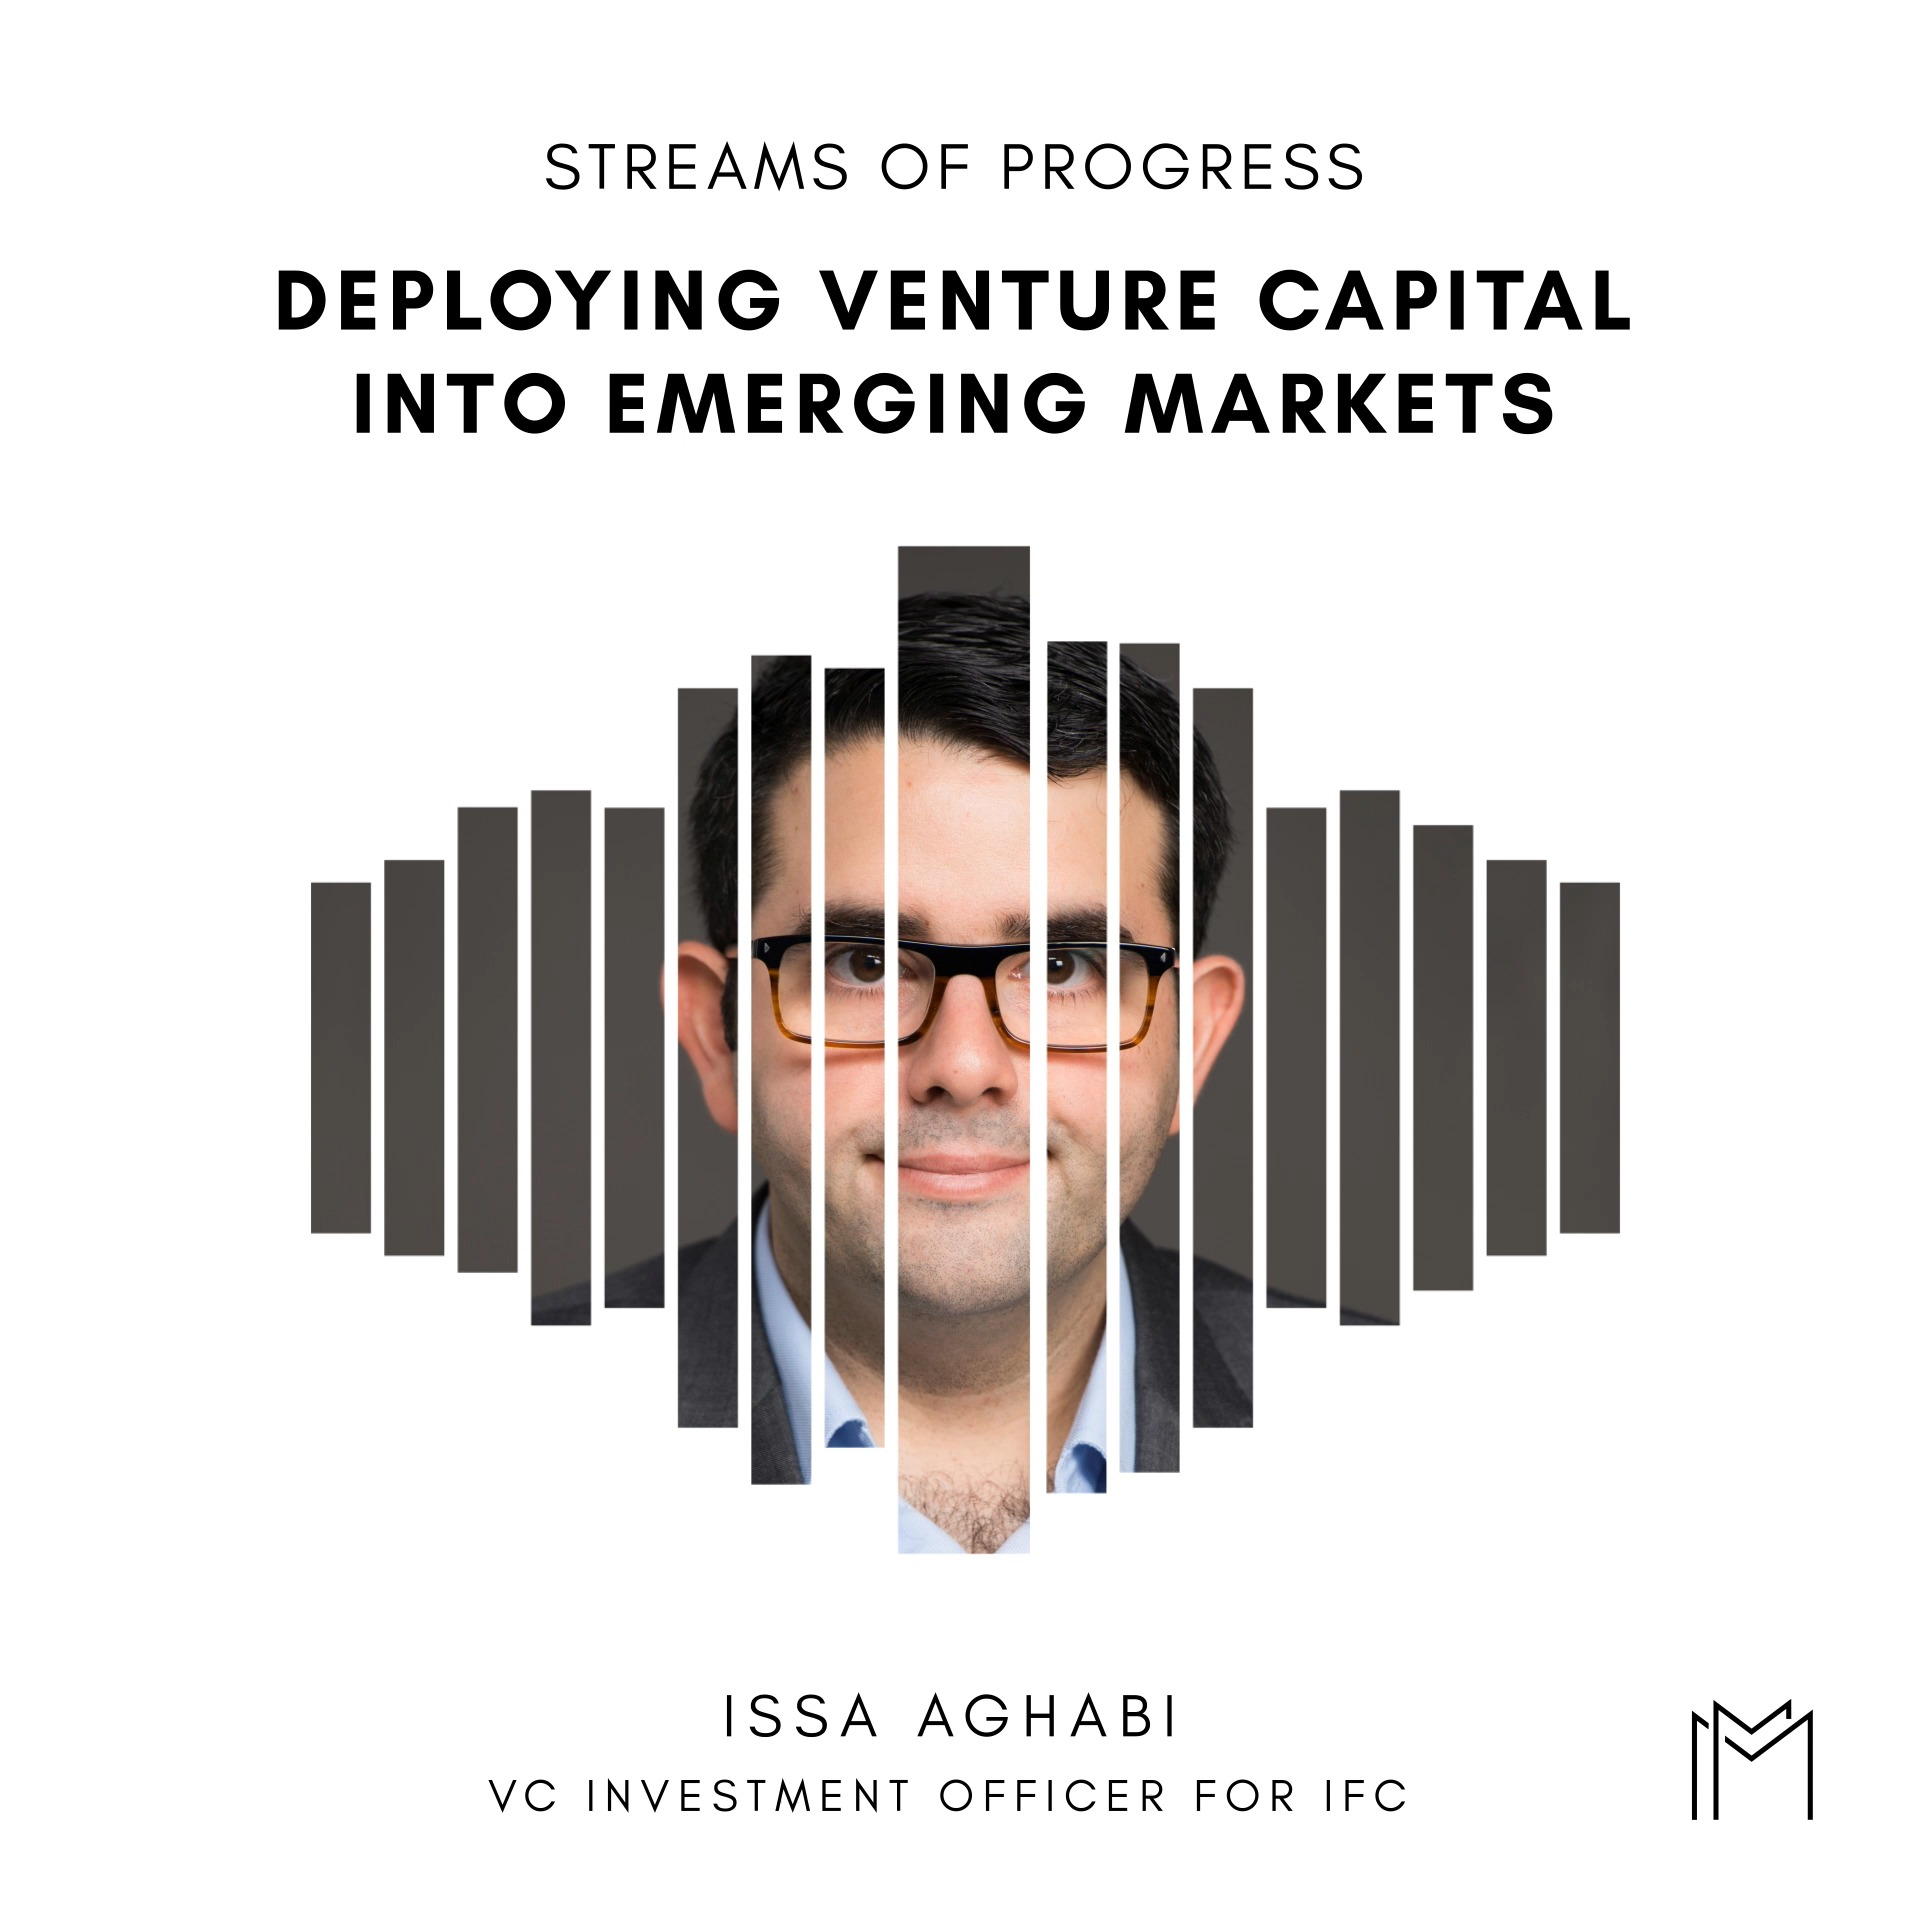 Ep025 - Issa Aghabi, VC Investment Officer at IFC